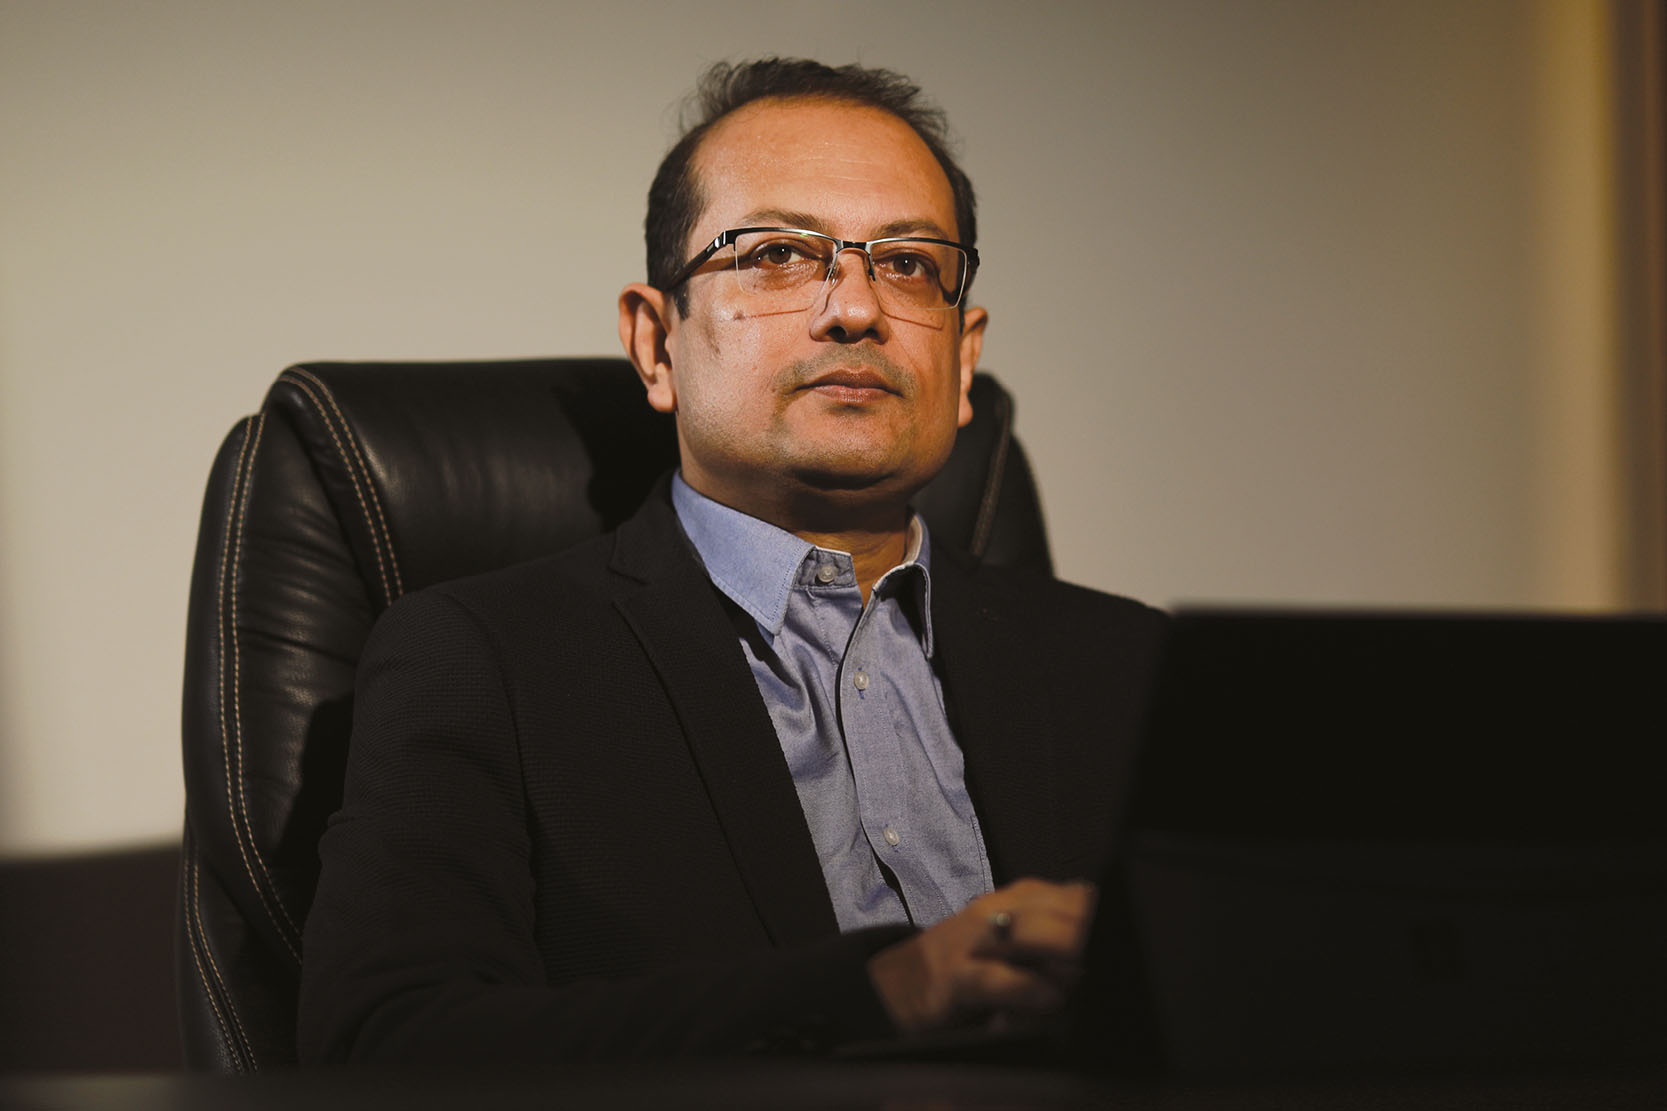 Sharad Mathur, Managing Director and CEO of Universal Sompo General Insurance